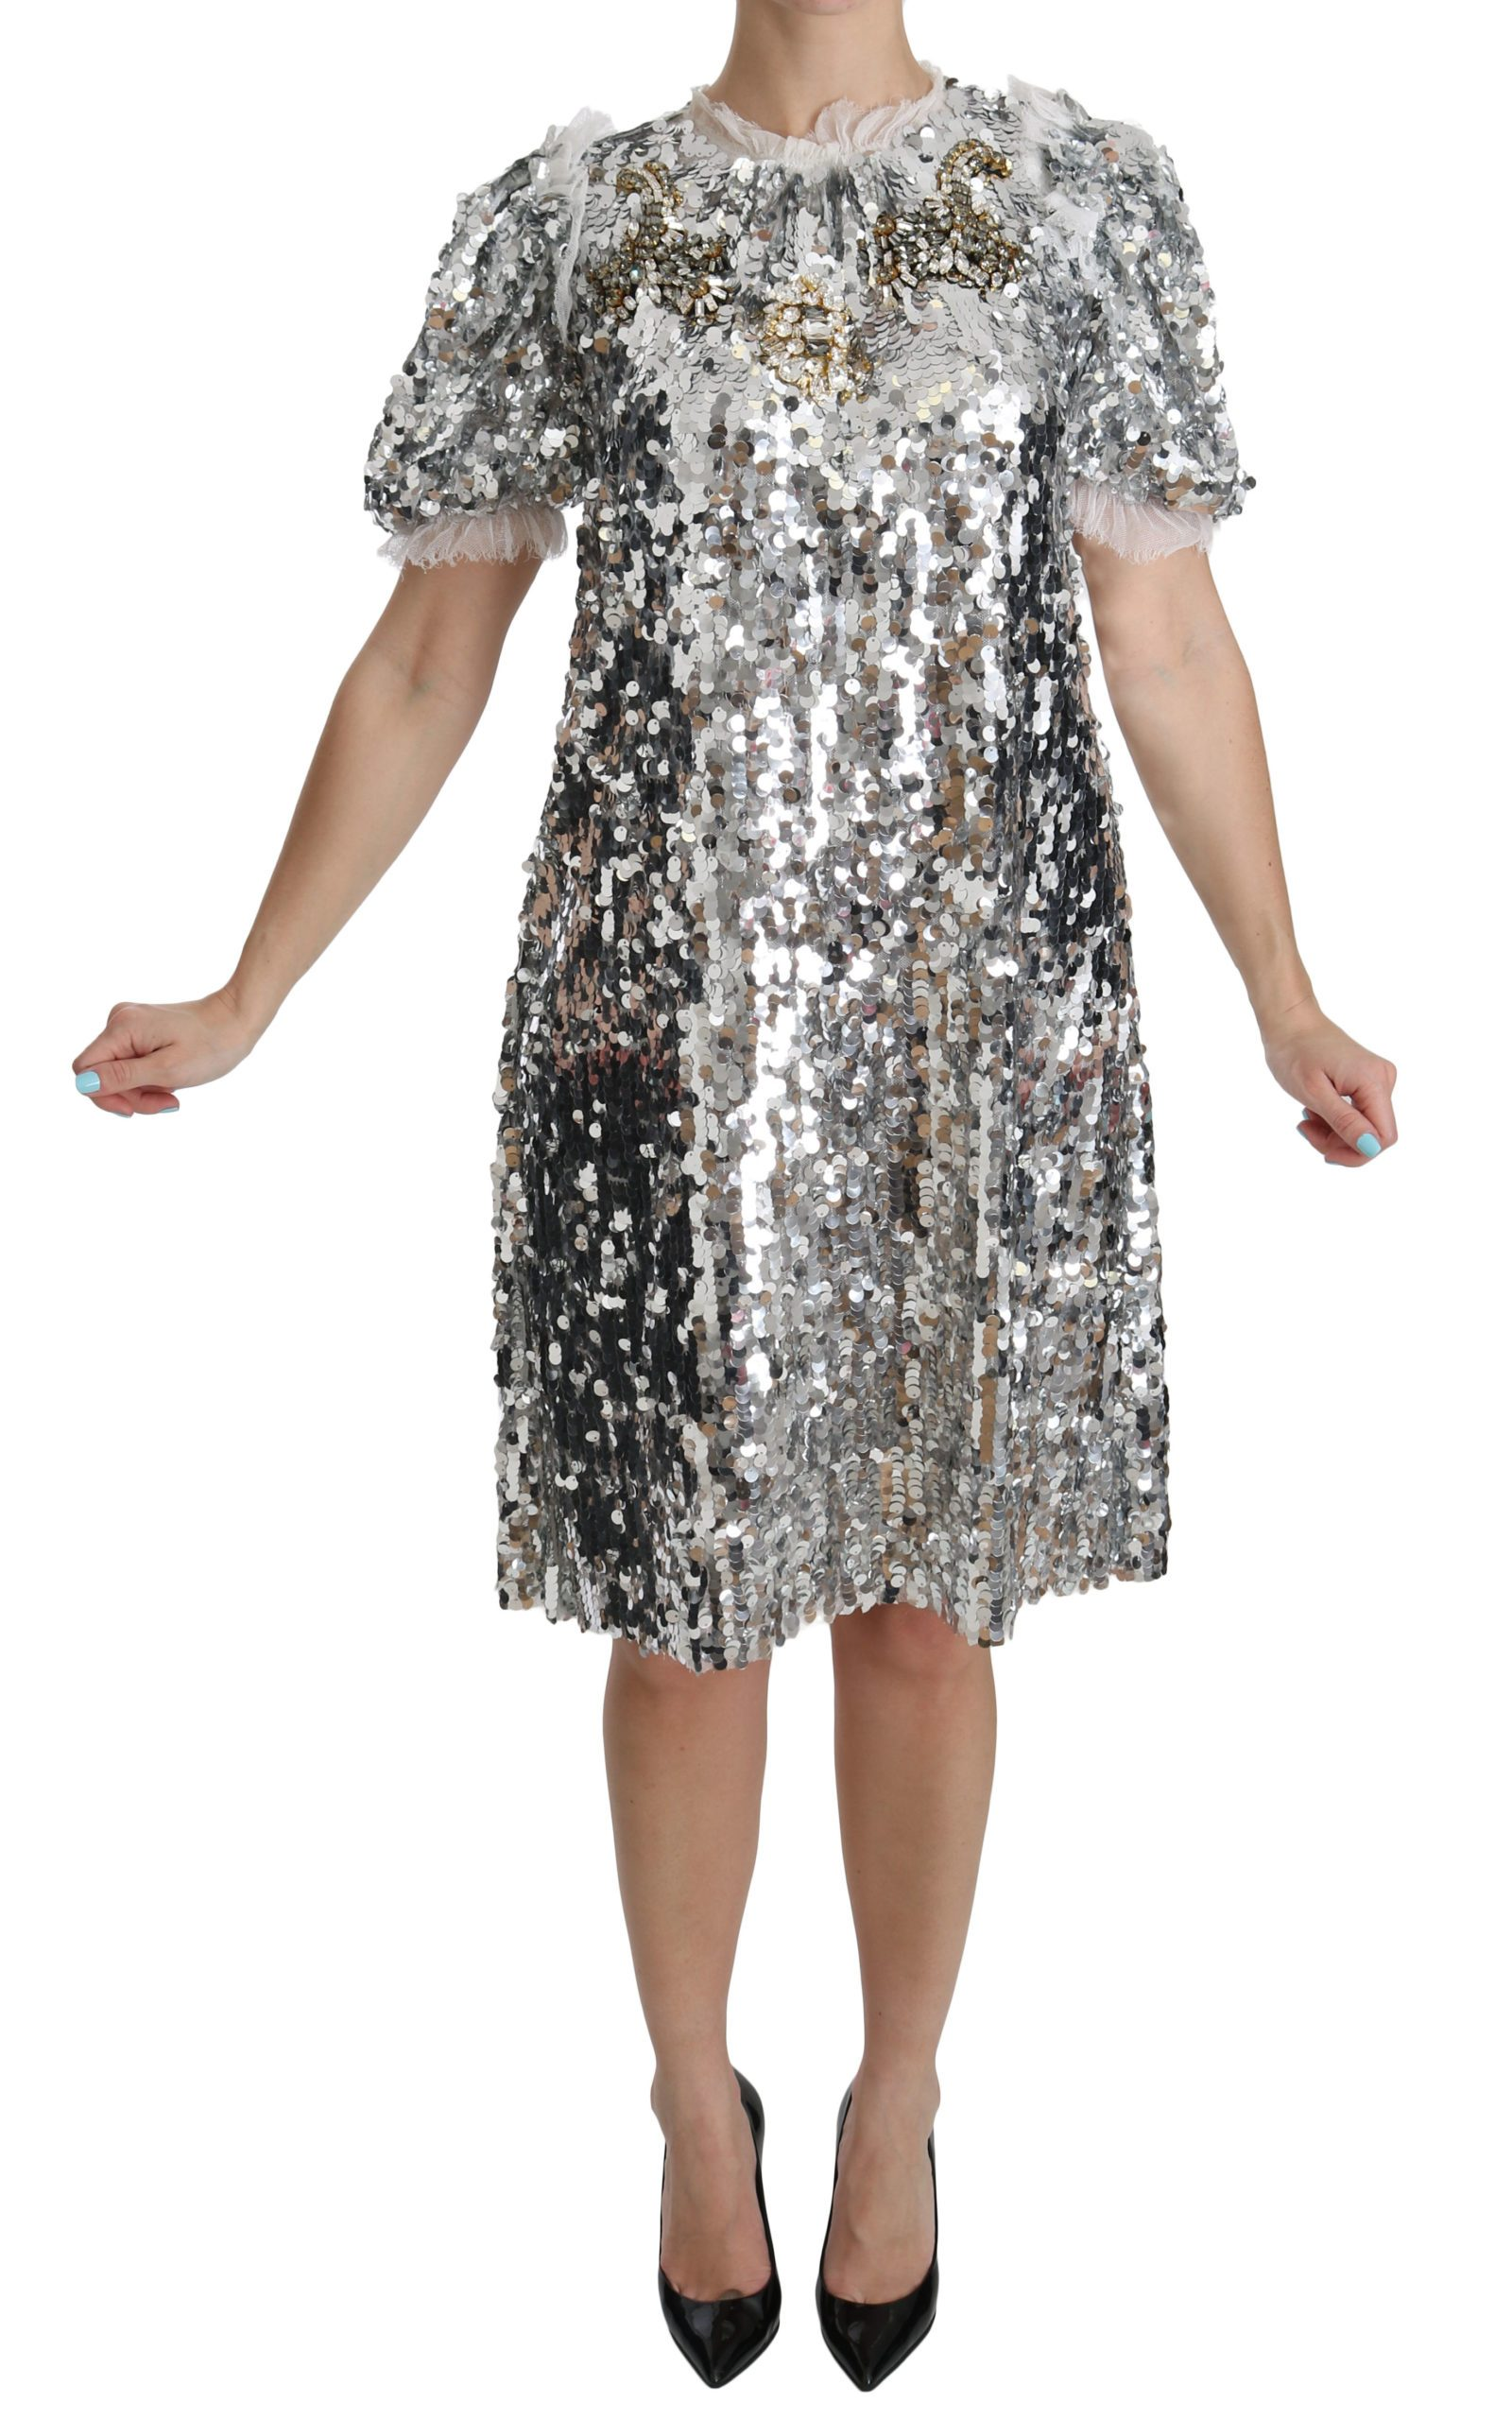 Dolce & Gabbana Women's Sequined Crystal Shift Gown Dress Silver DR2045 - IT40|S